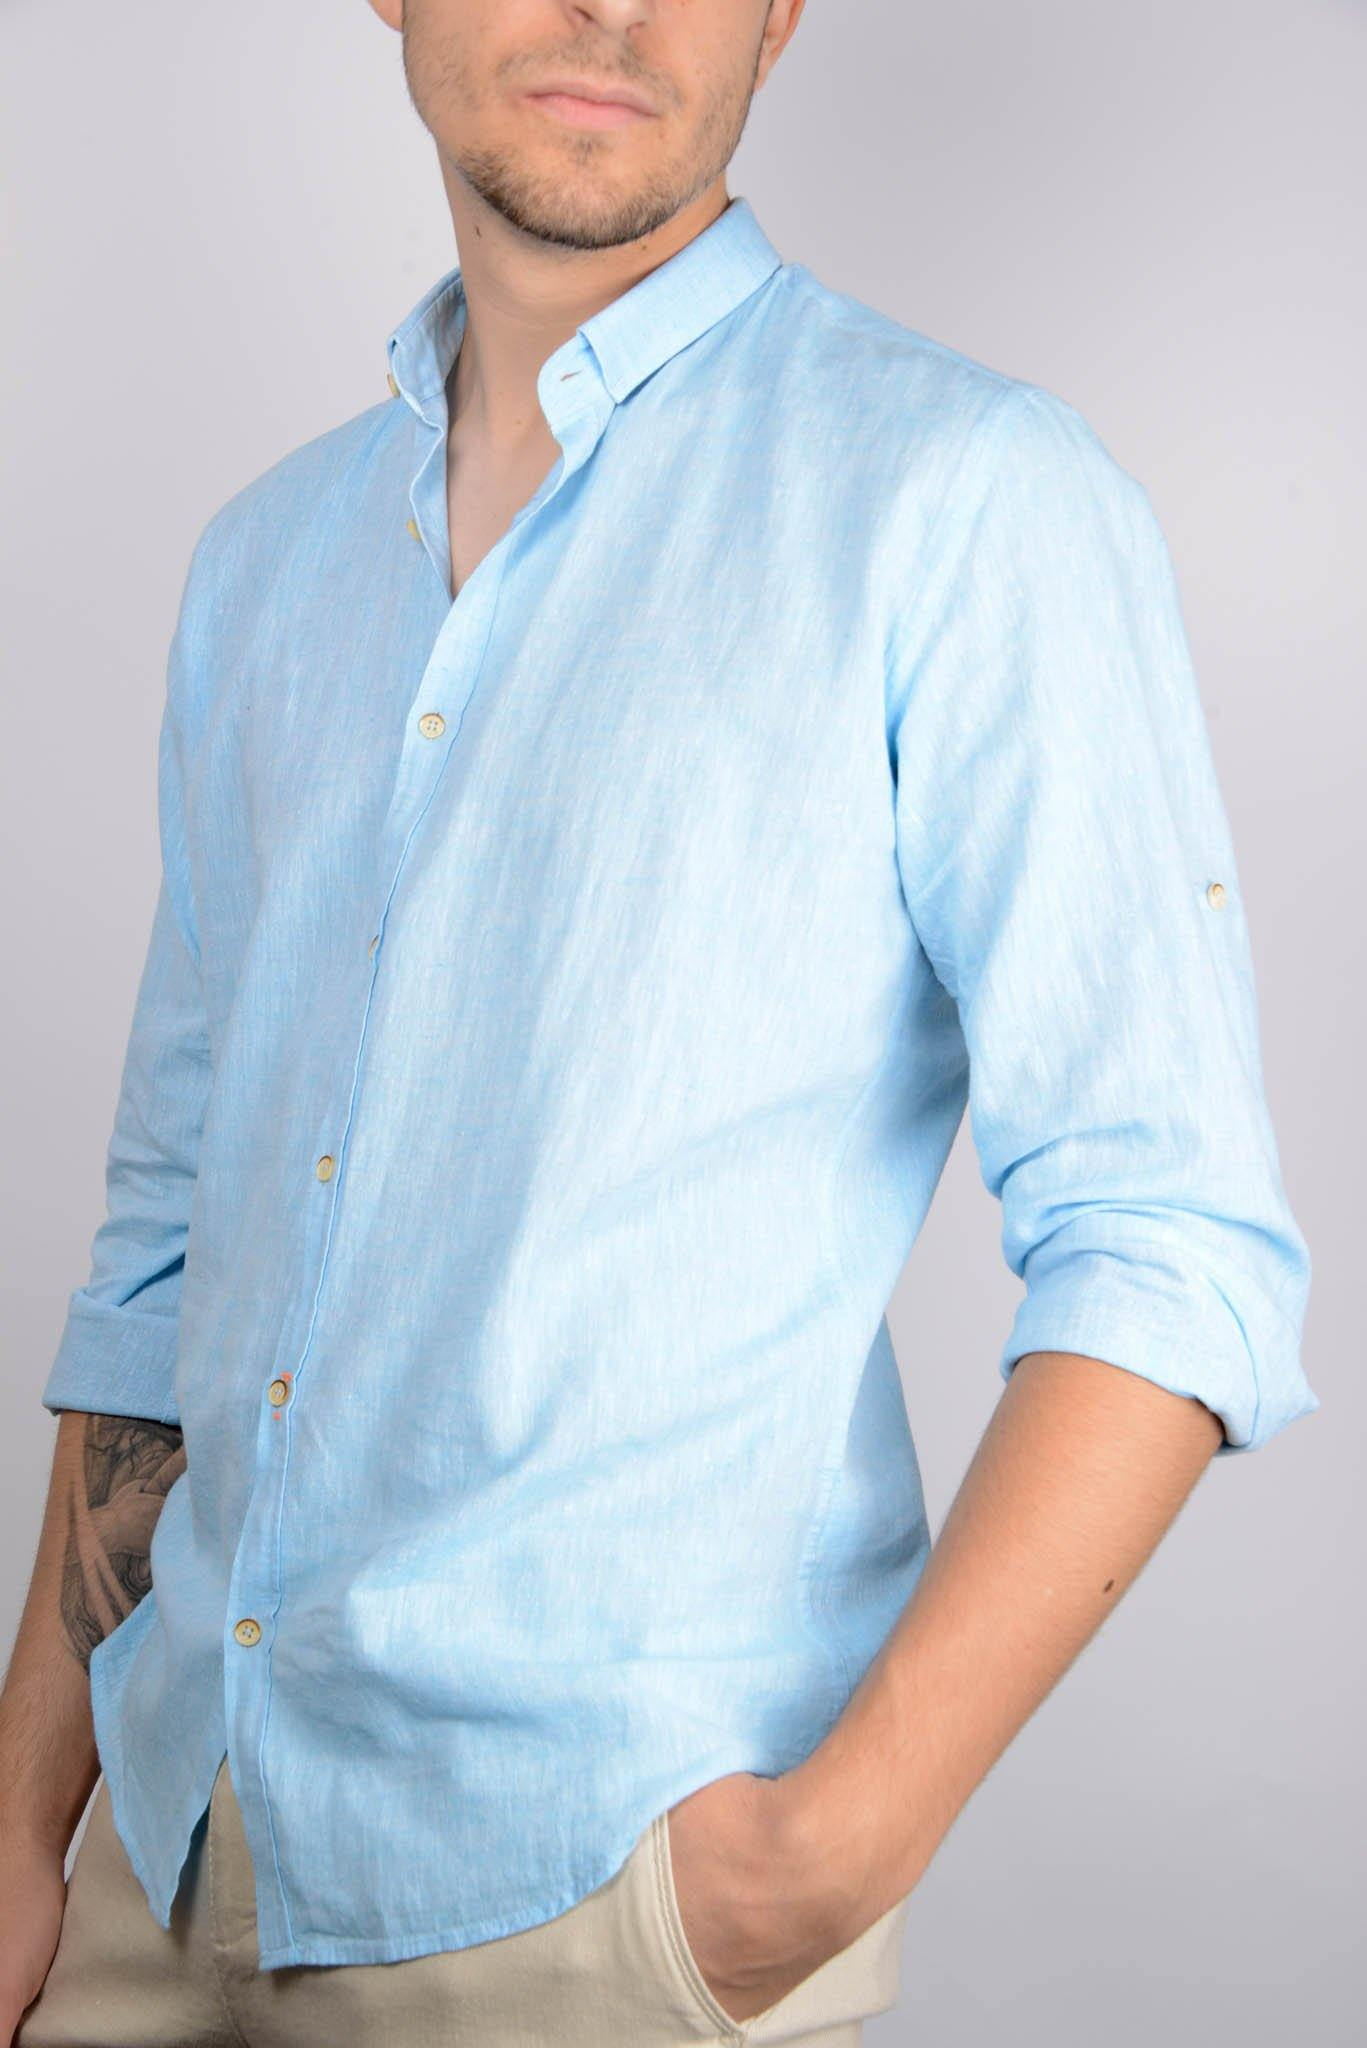 Long Sleeve Linen Shirt - Haight & Ashbury